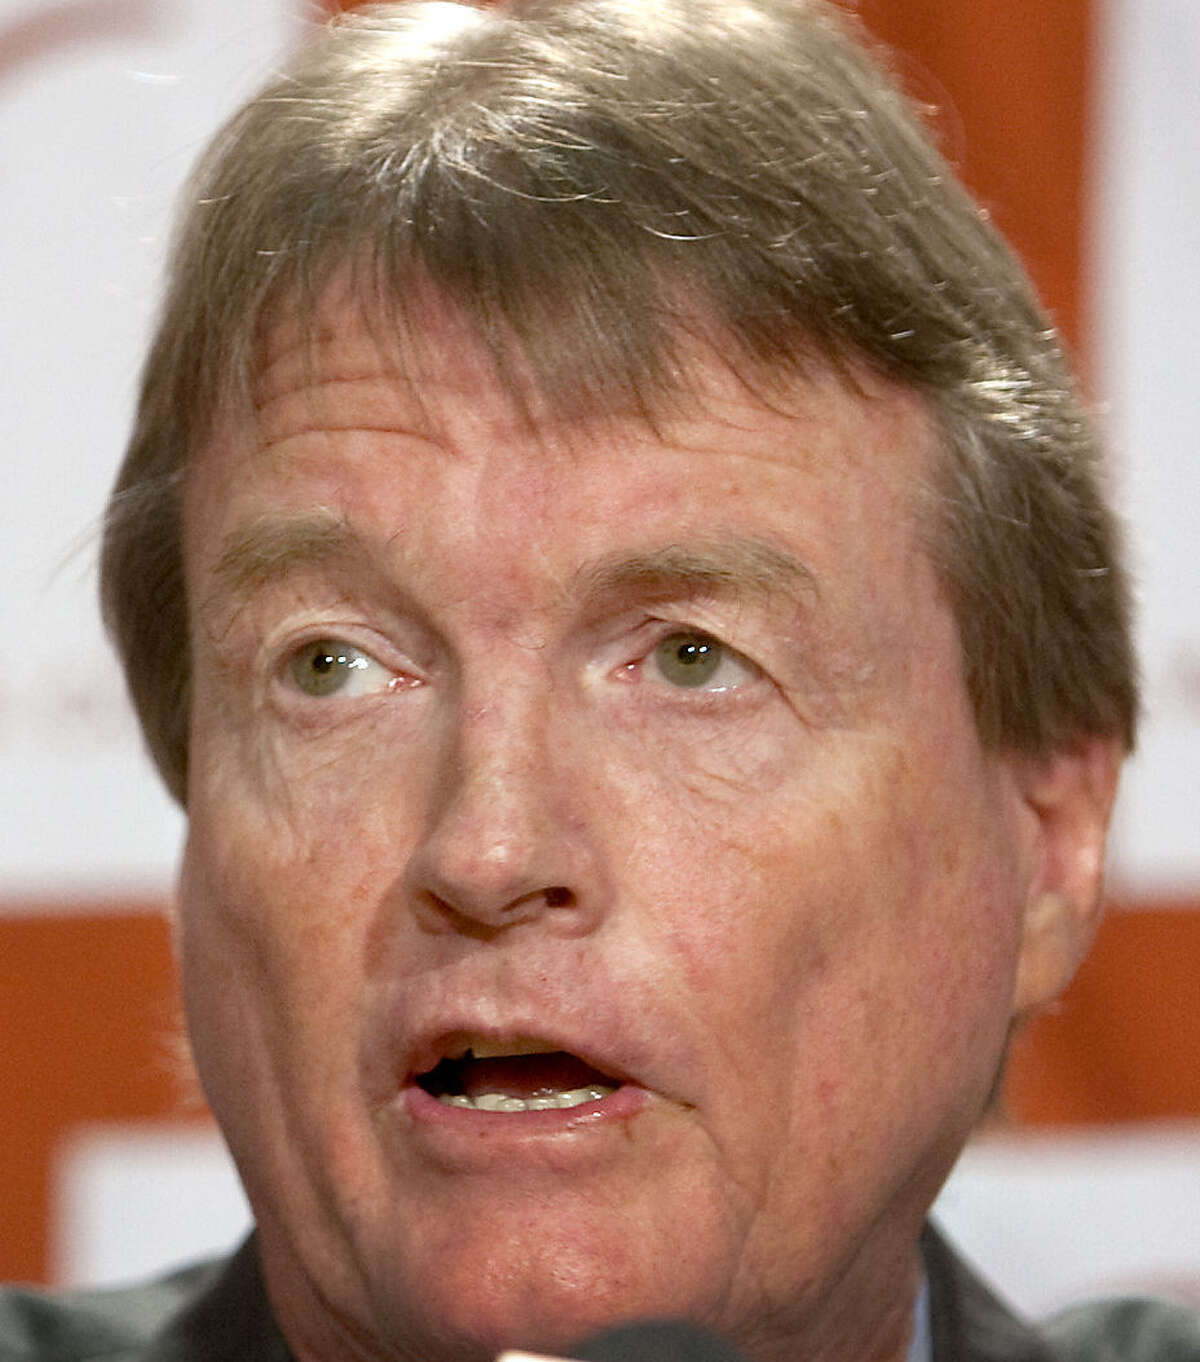 UT President Bill Powers' employment is up for discussion during the private session by regents.